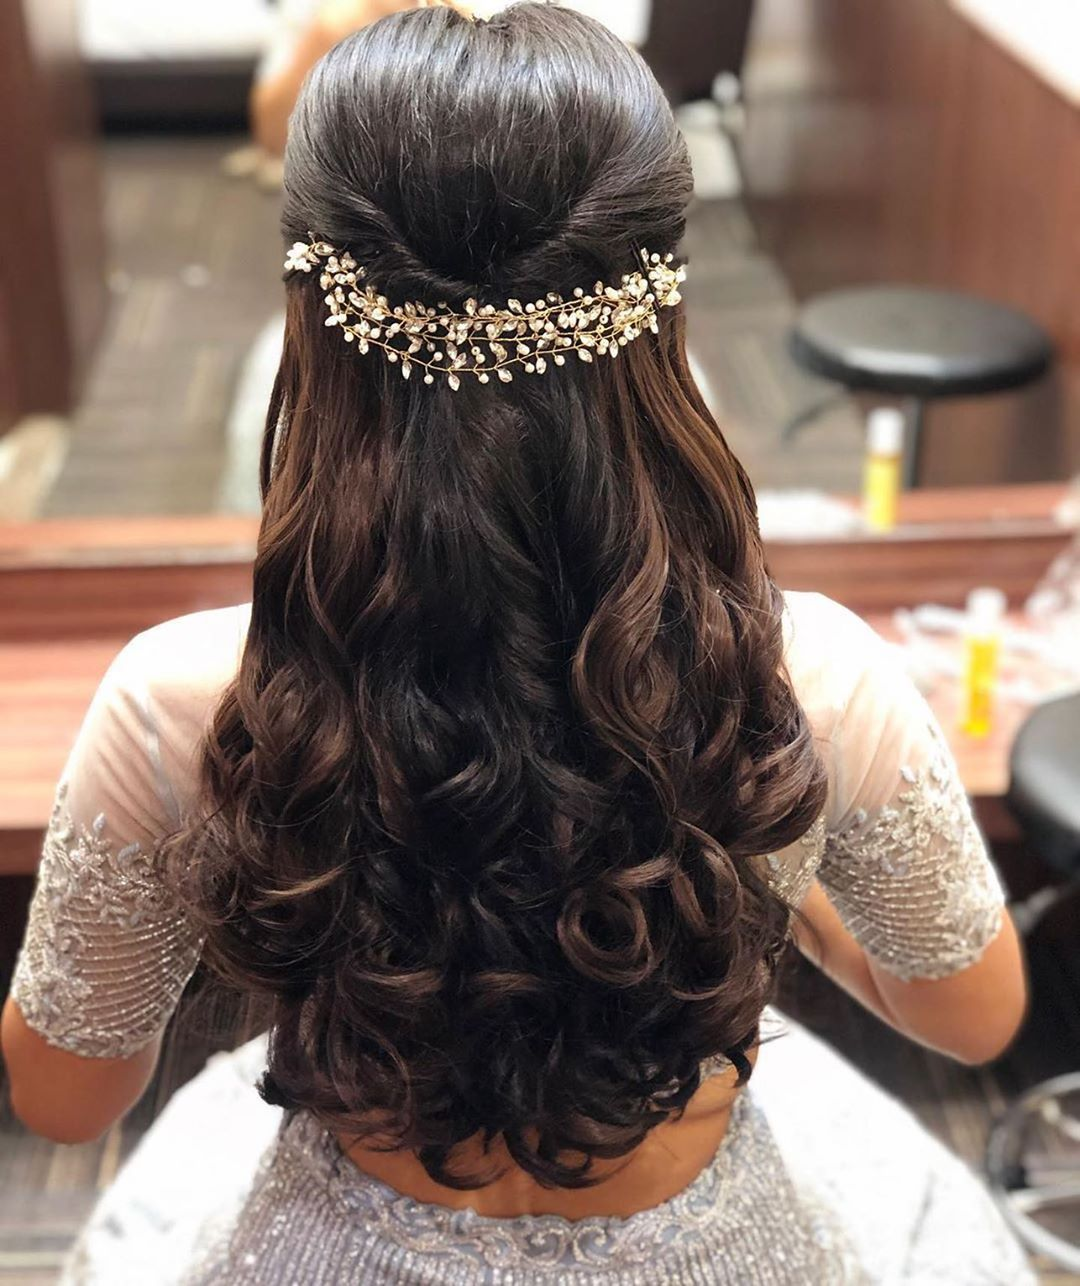 Open Hairstyle Ideas For The Indian Bride Engagement Hairstyles Open Hairstyles Bridal Hair Buns